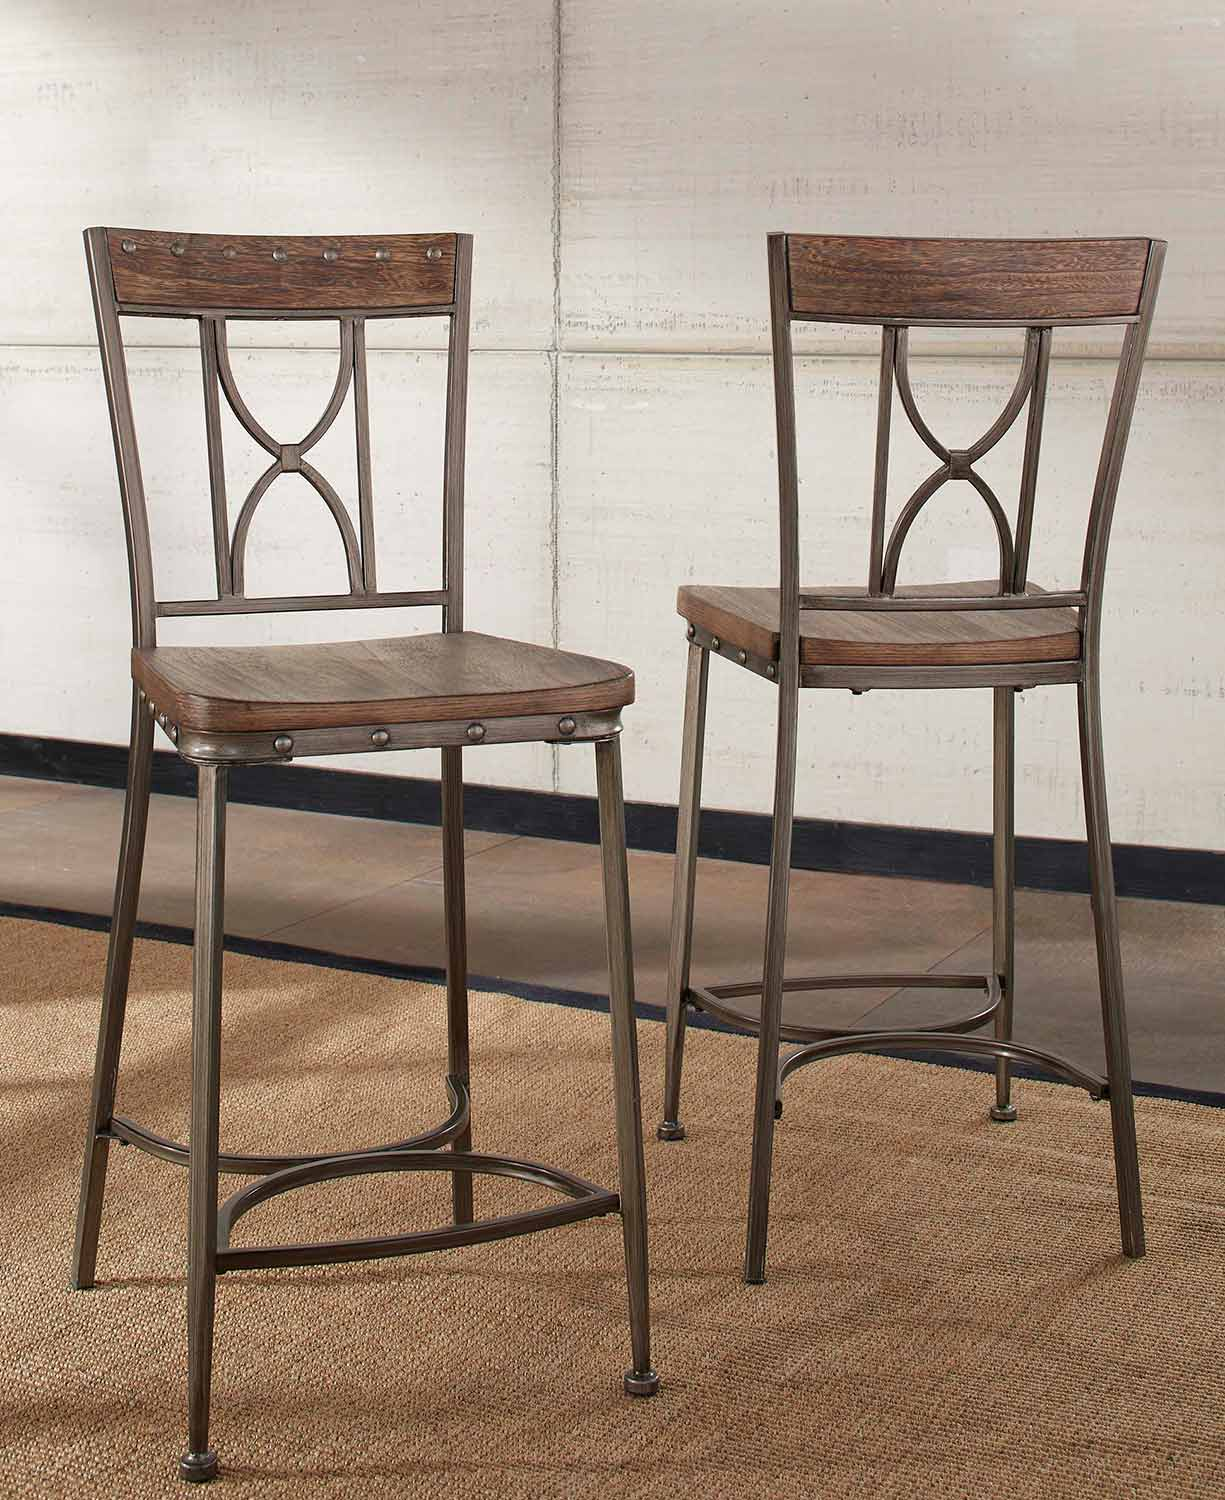 Hillsdale Paddock Non-Swivel Counter Height Stool - Brushed Steel Metal/Distressed Brown